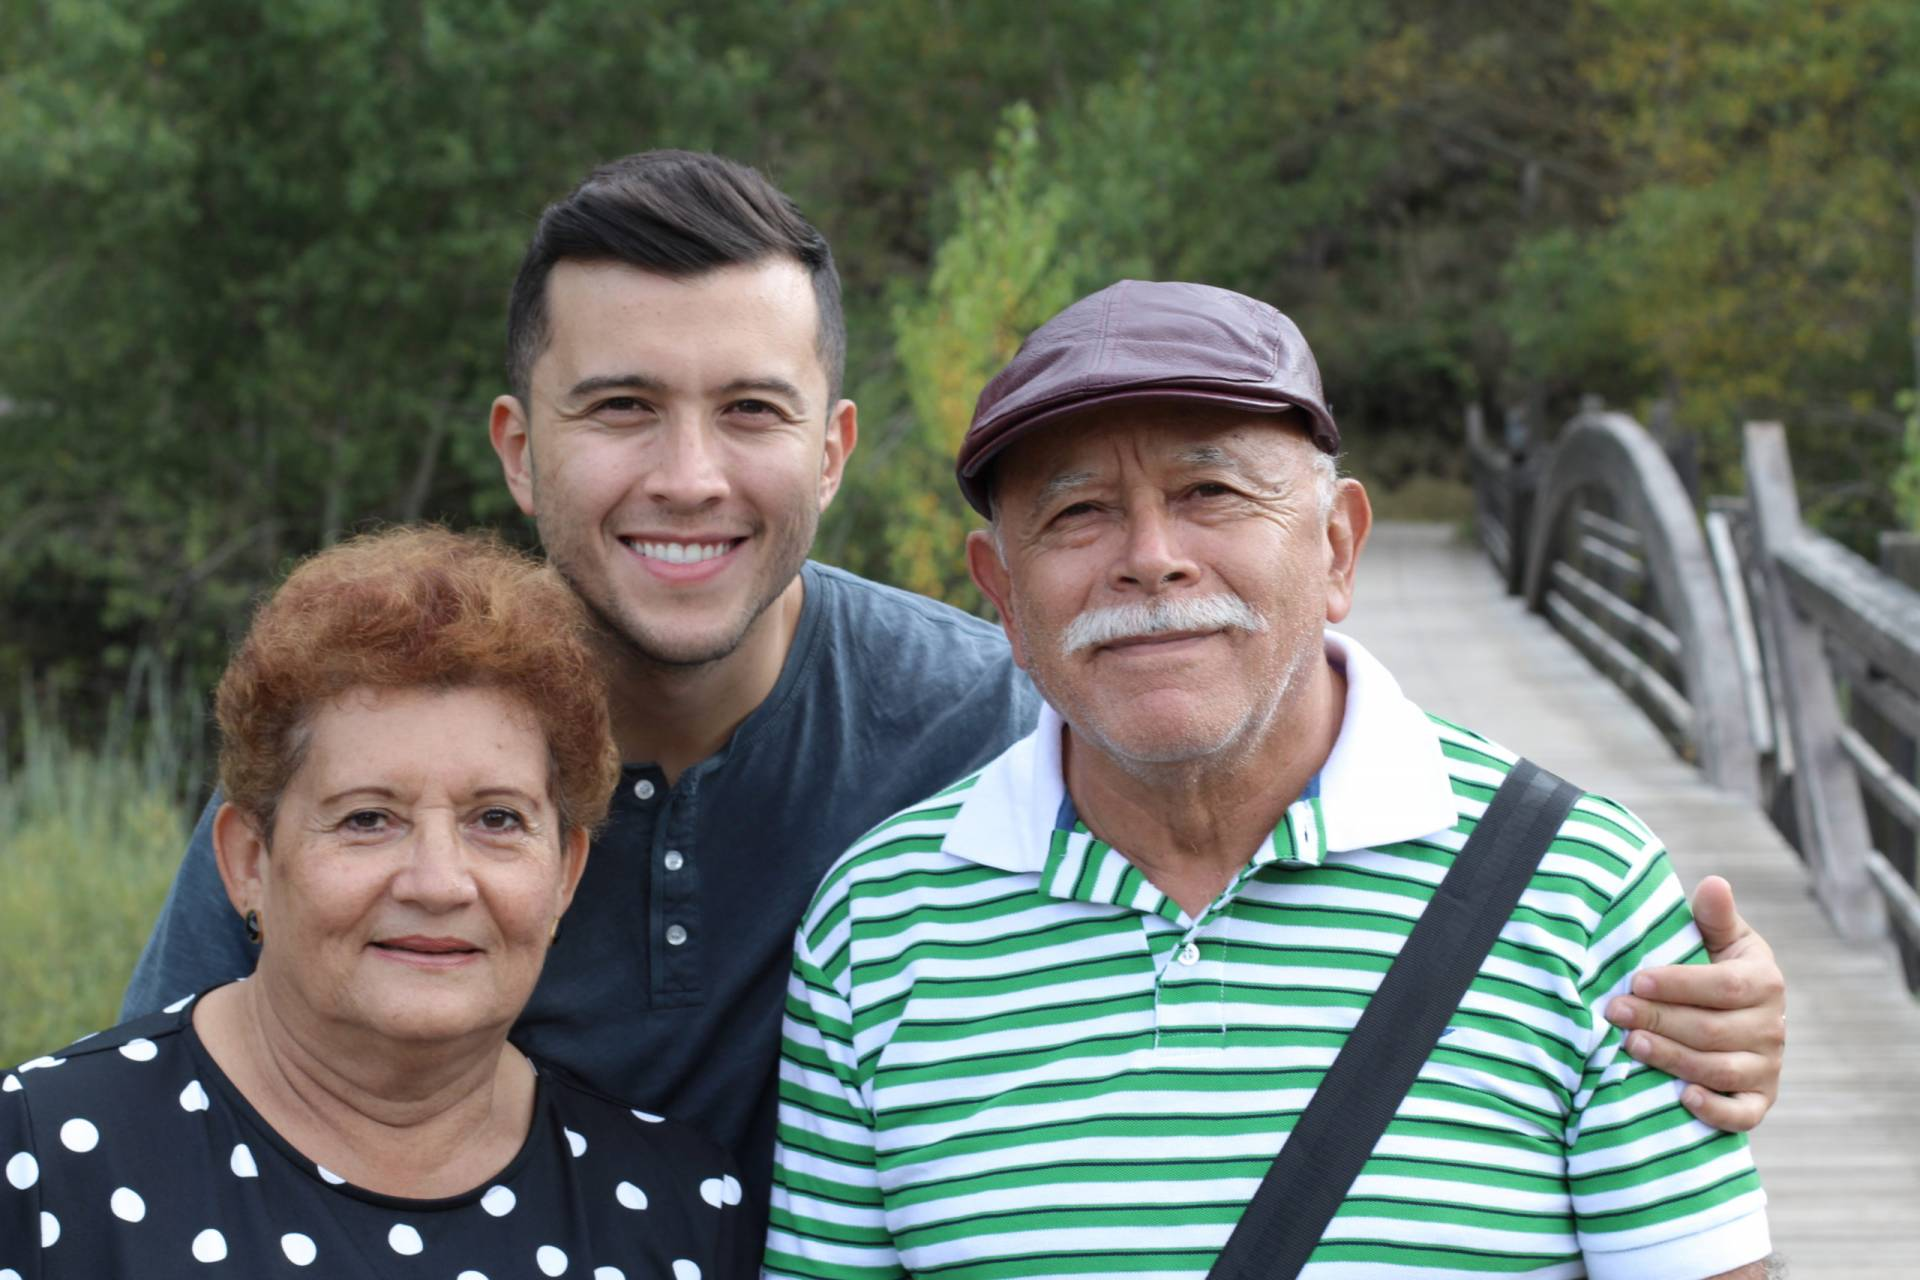 South American family with grown up son